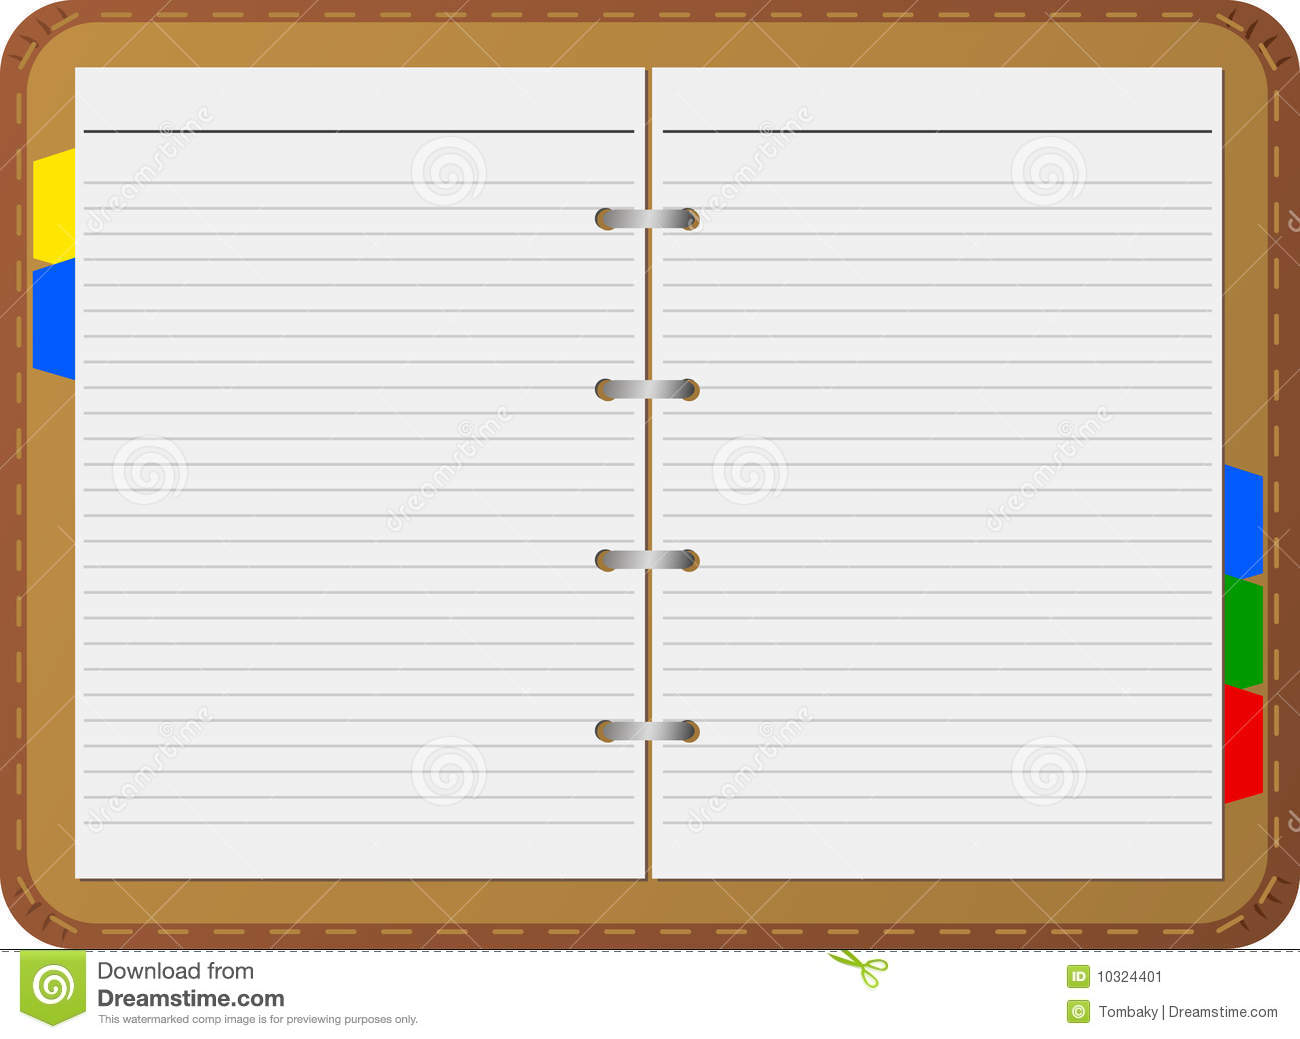 Notebook And Pen Sketch Stock Vector Art More Images Of: Vector Notepad Stock Image